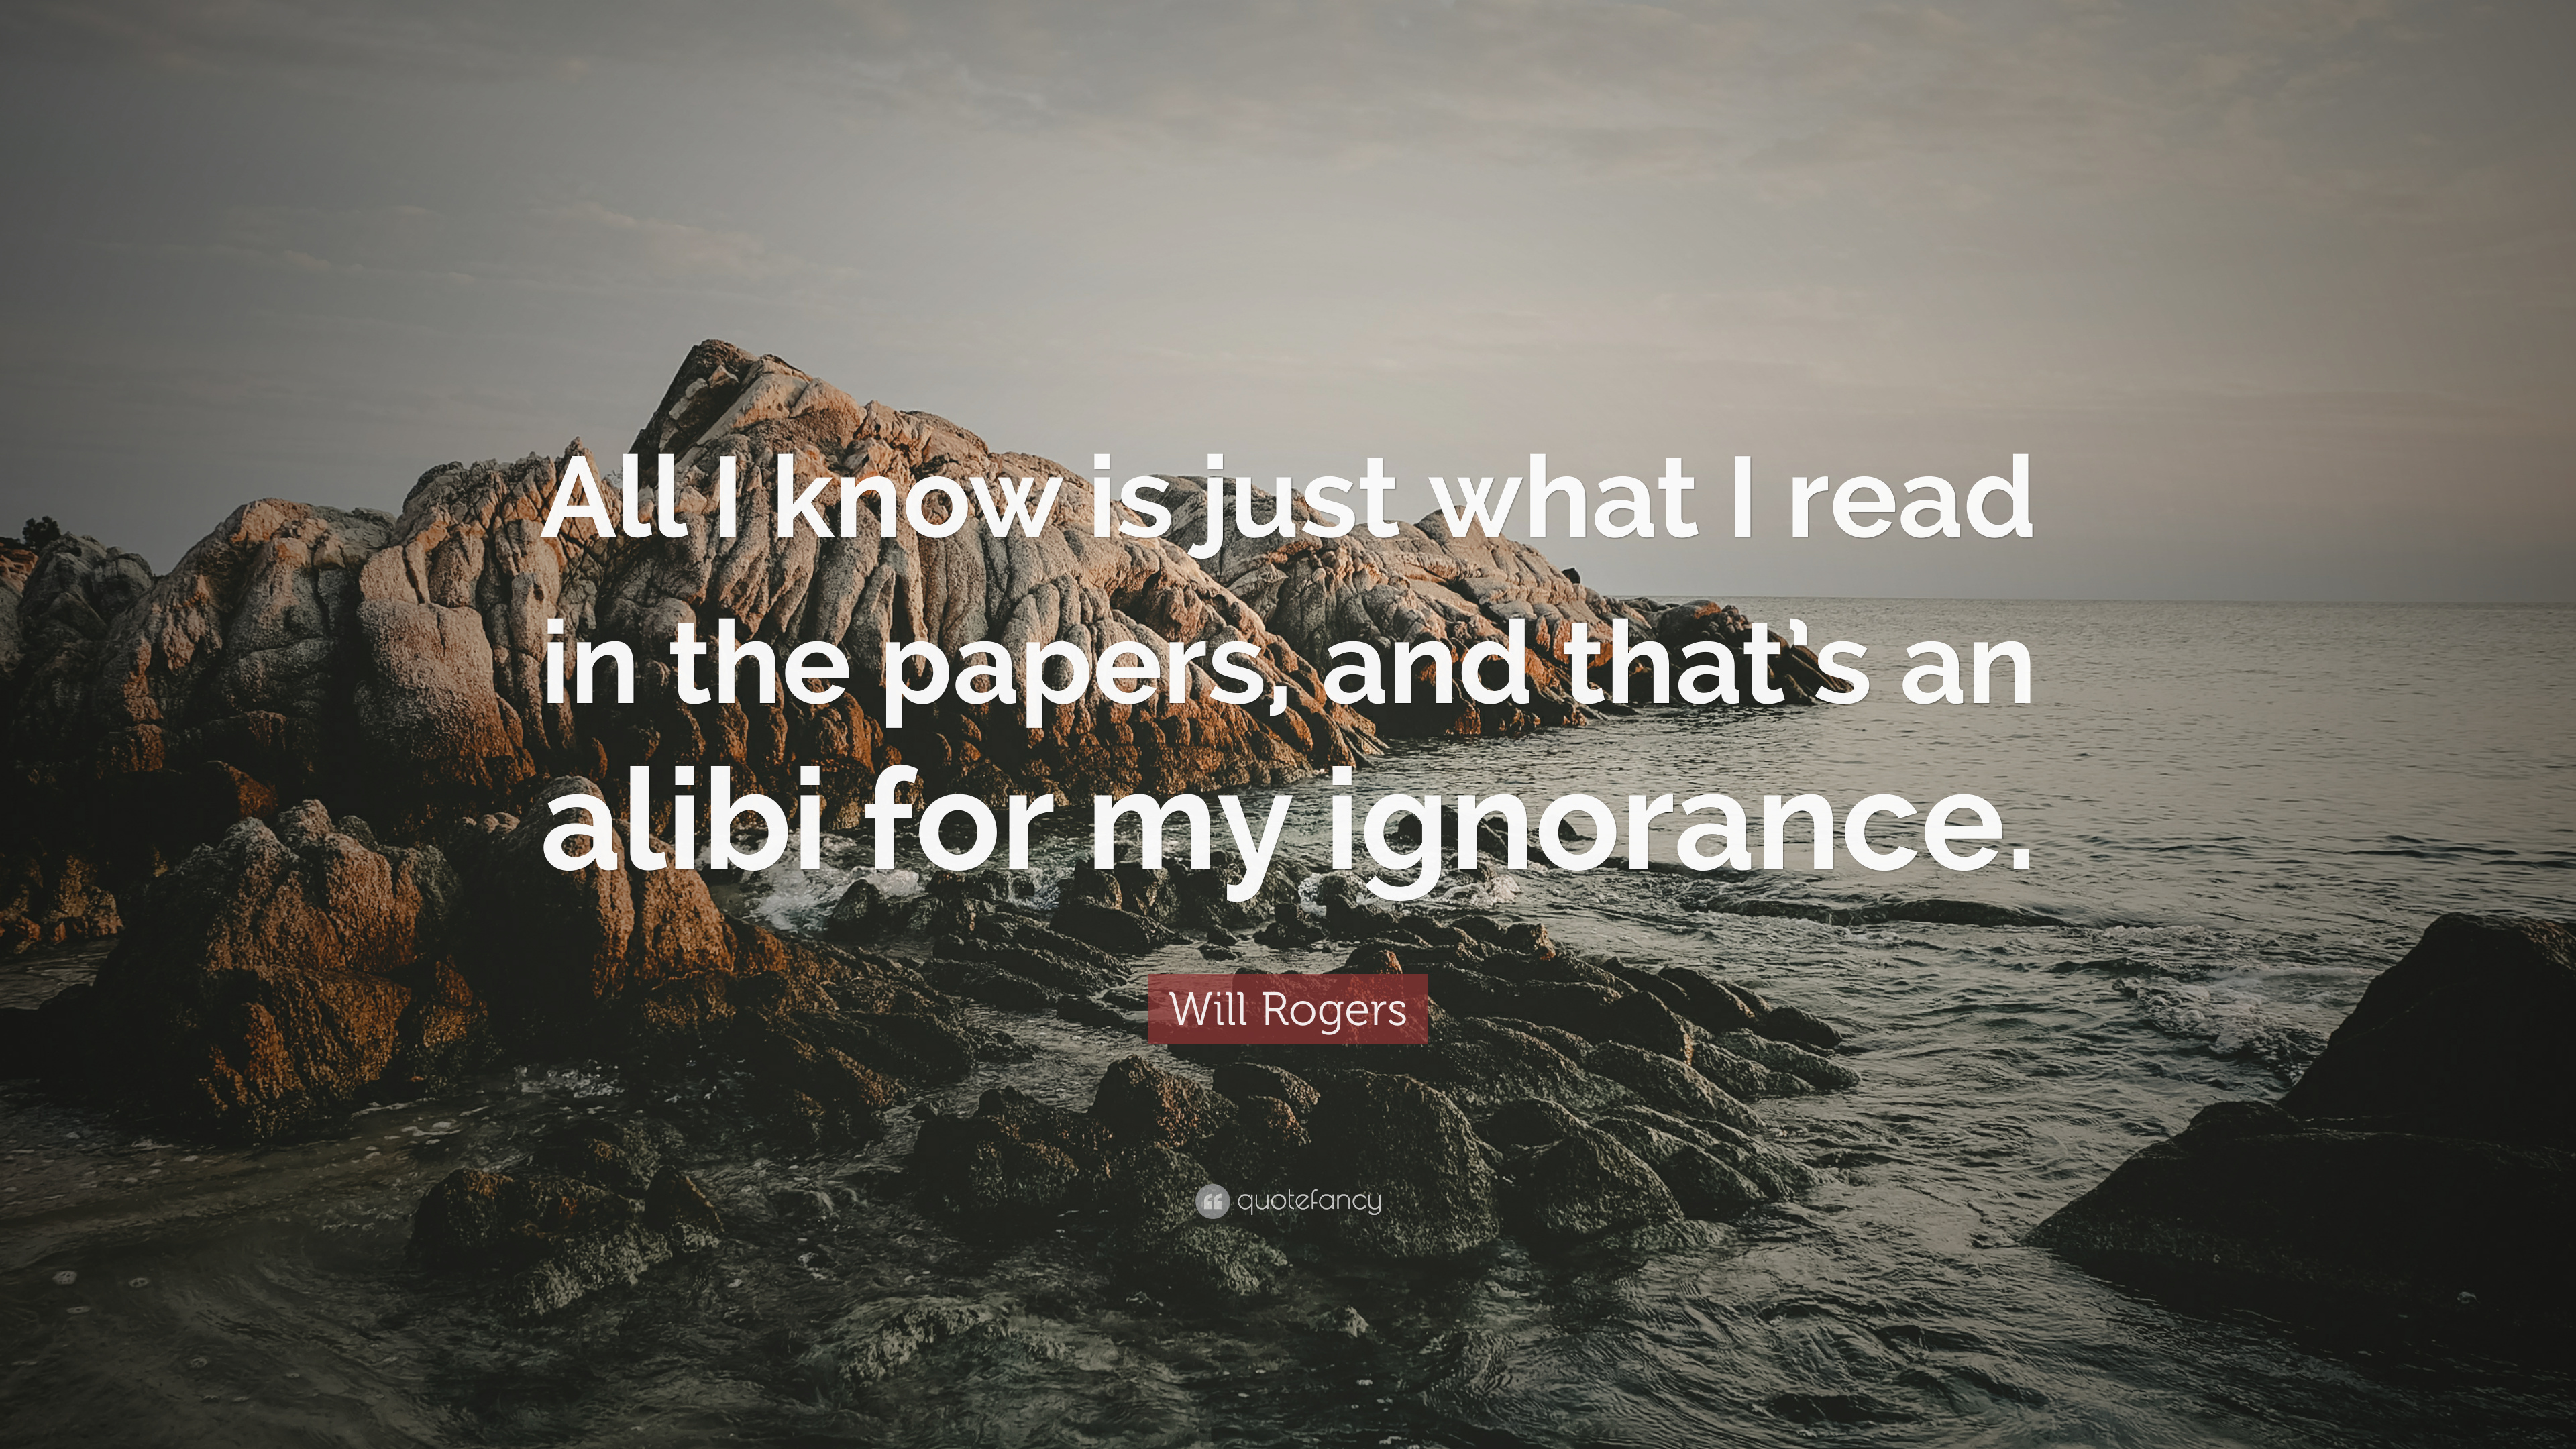 a review of all i know is what i read in the papers by will rogers A way of being has 1,647 the book is a collection of rogers' papers done on different aspects of rogers saved my life i read a way of being and i cried.